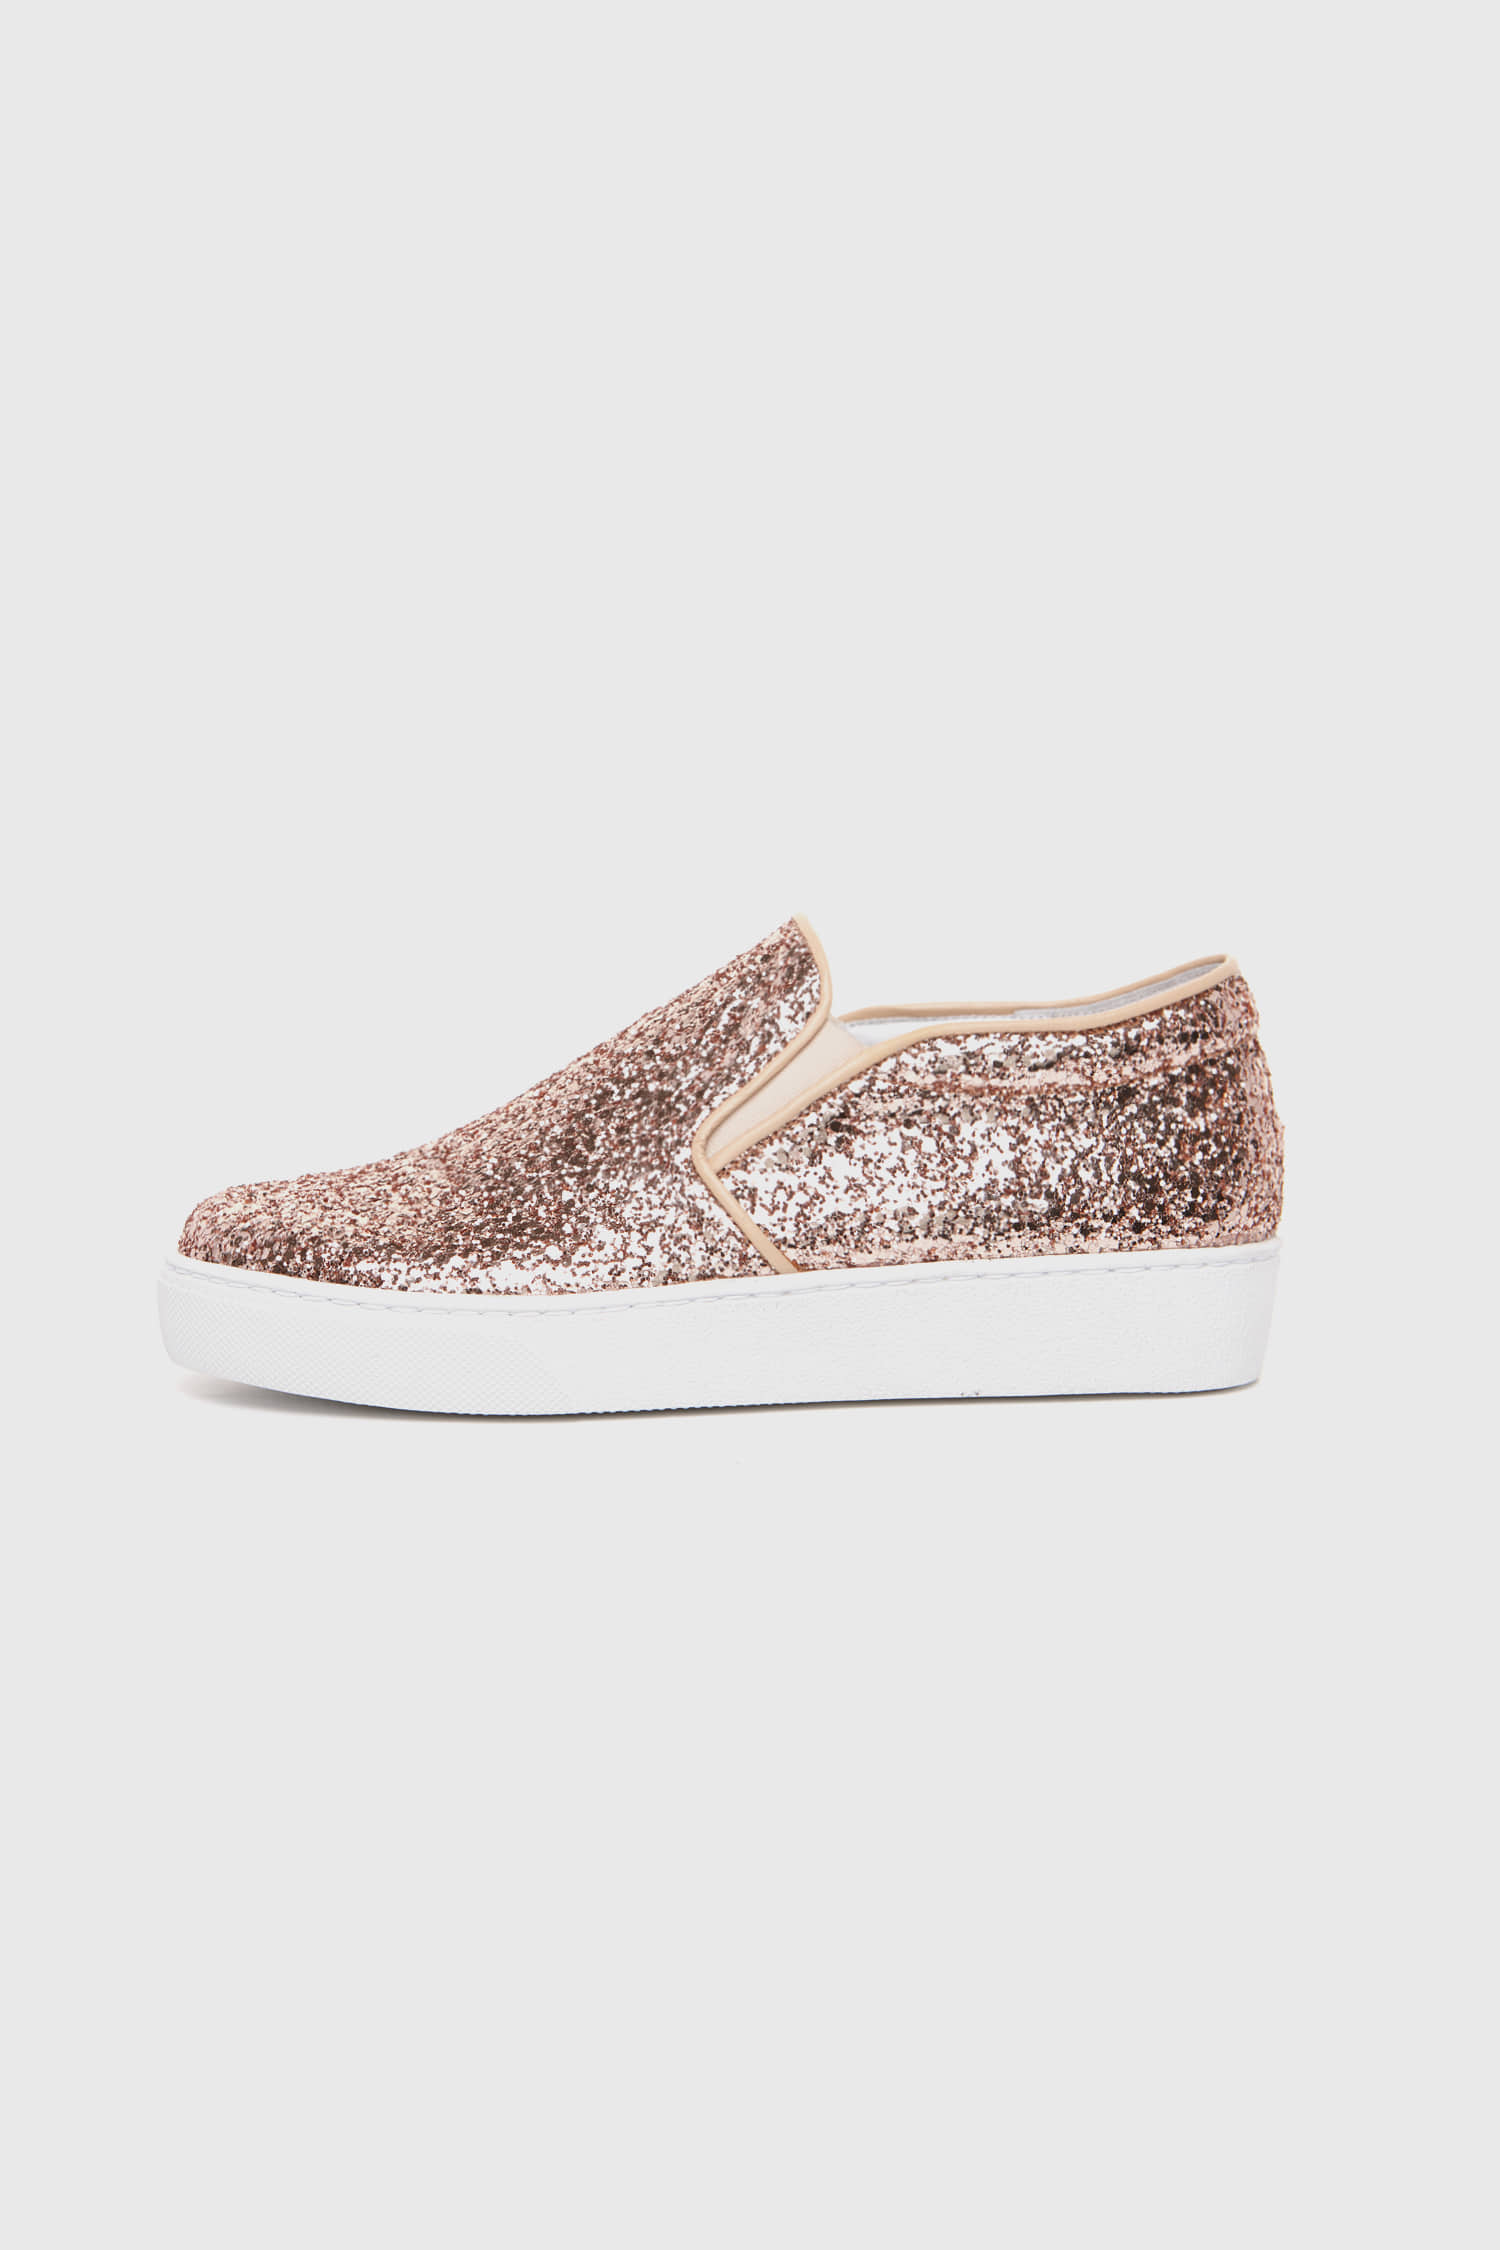 SHINING SLIP-ON ROSEGOLD